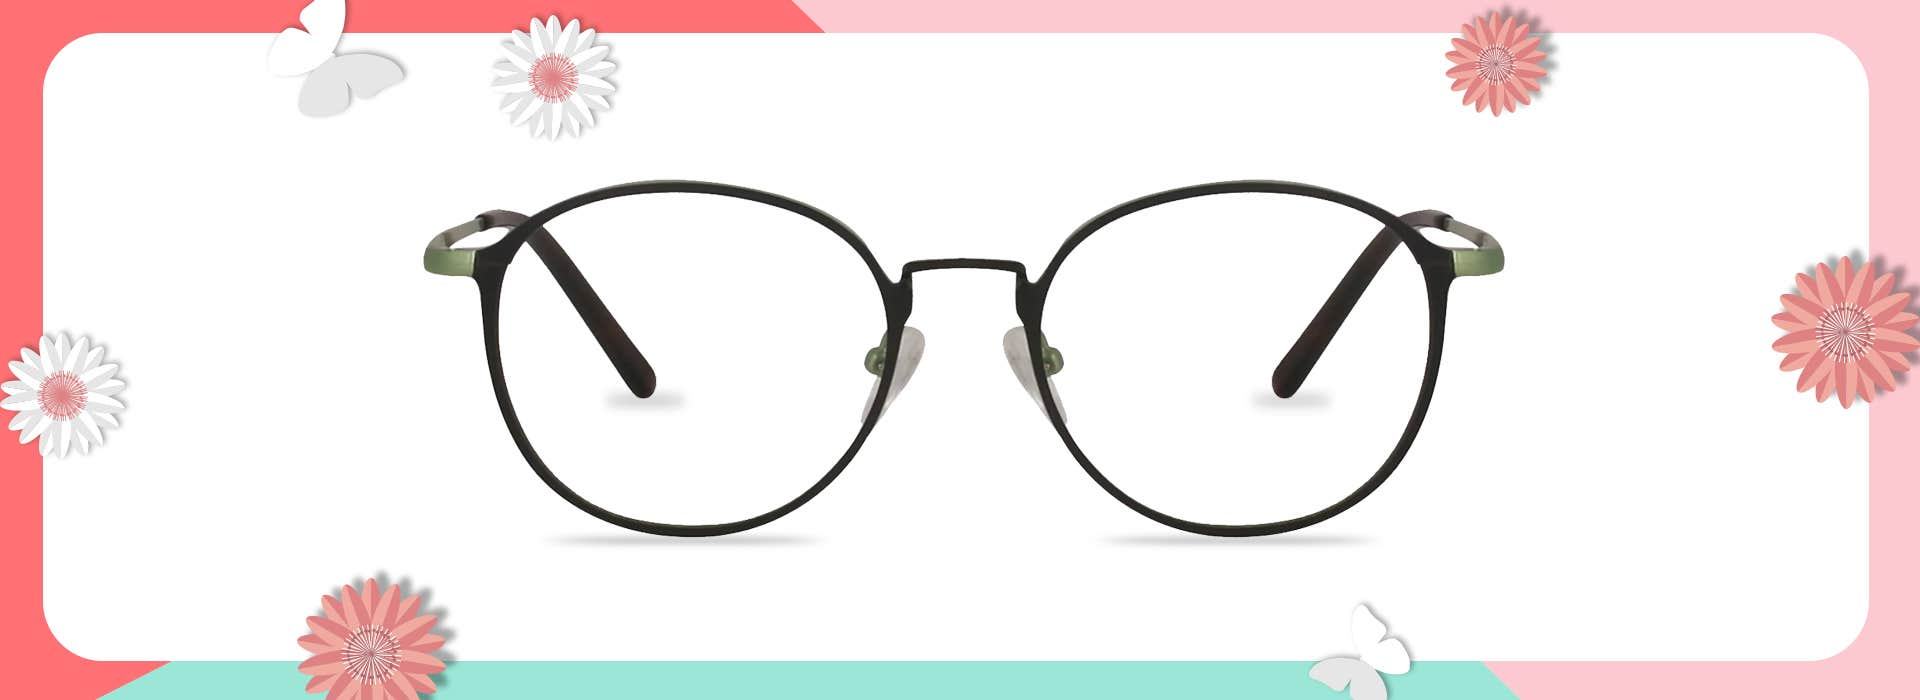 The 128147 ROUND EYEGLASSES: